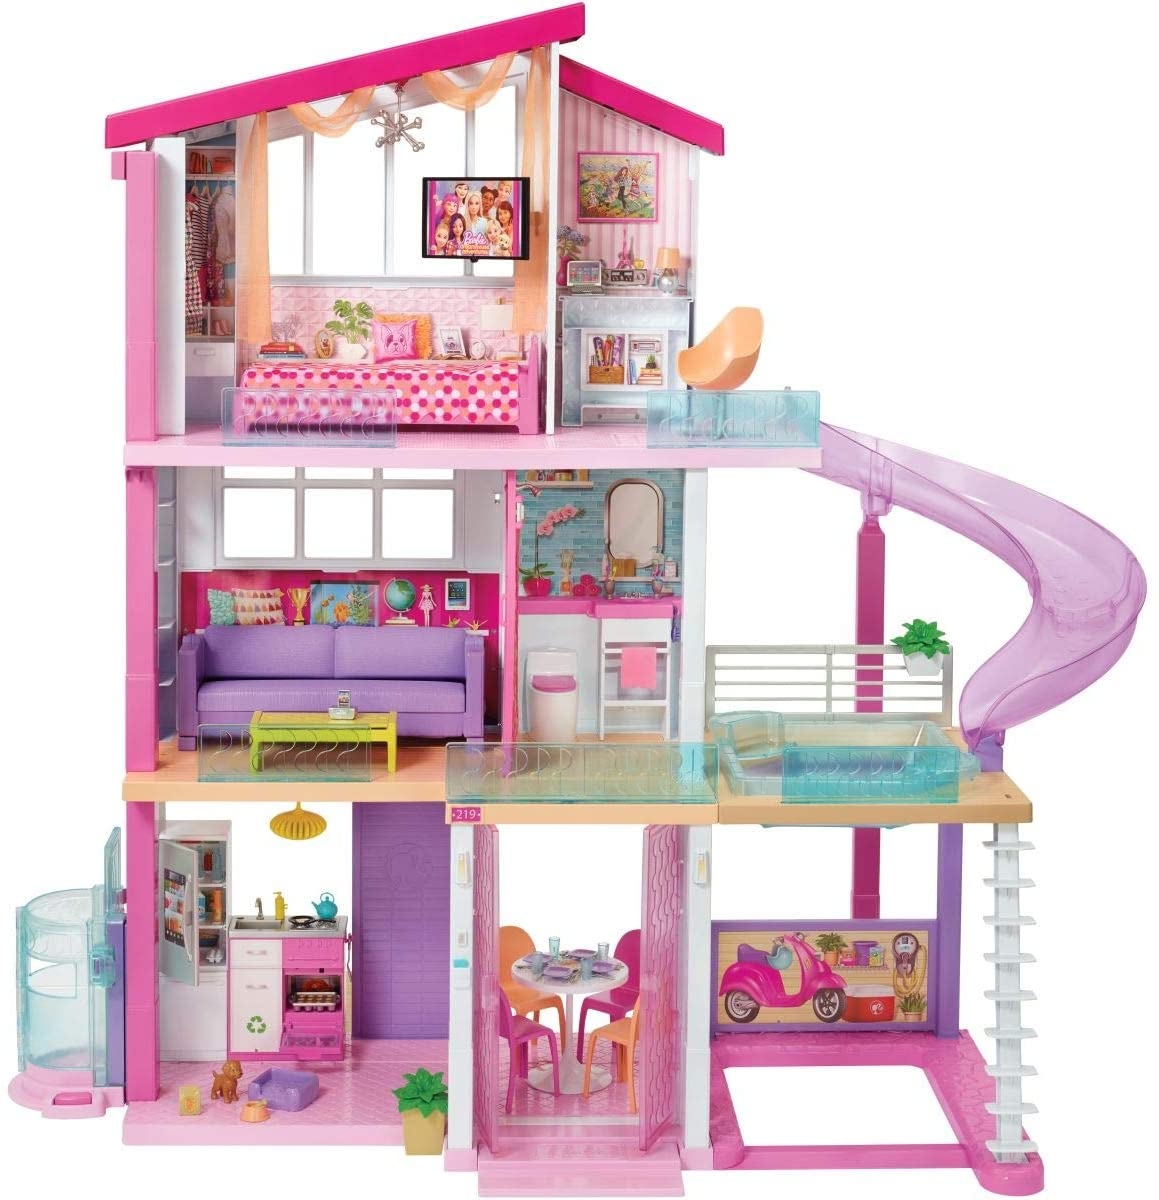 Barbie Dreamhouse with Pool Slide and Elevator